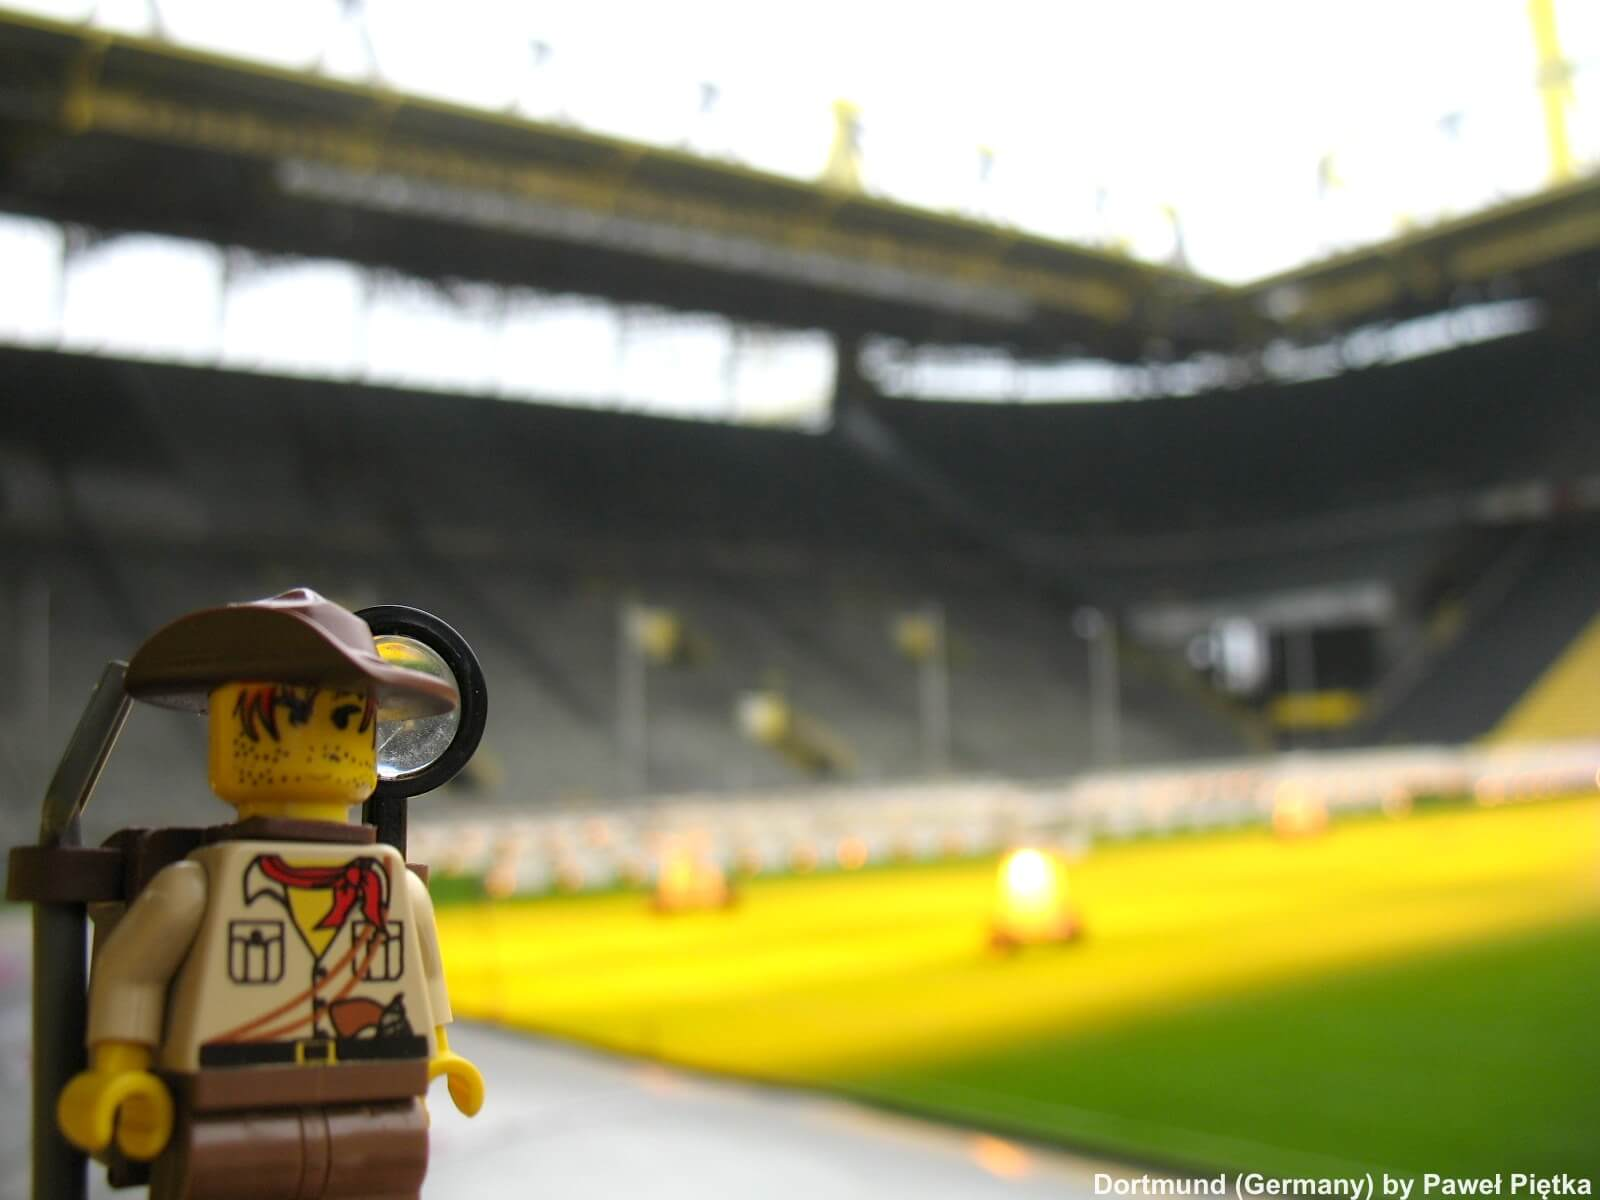 Dortmund (Germany) - Westfalenstadion